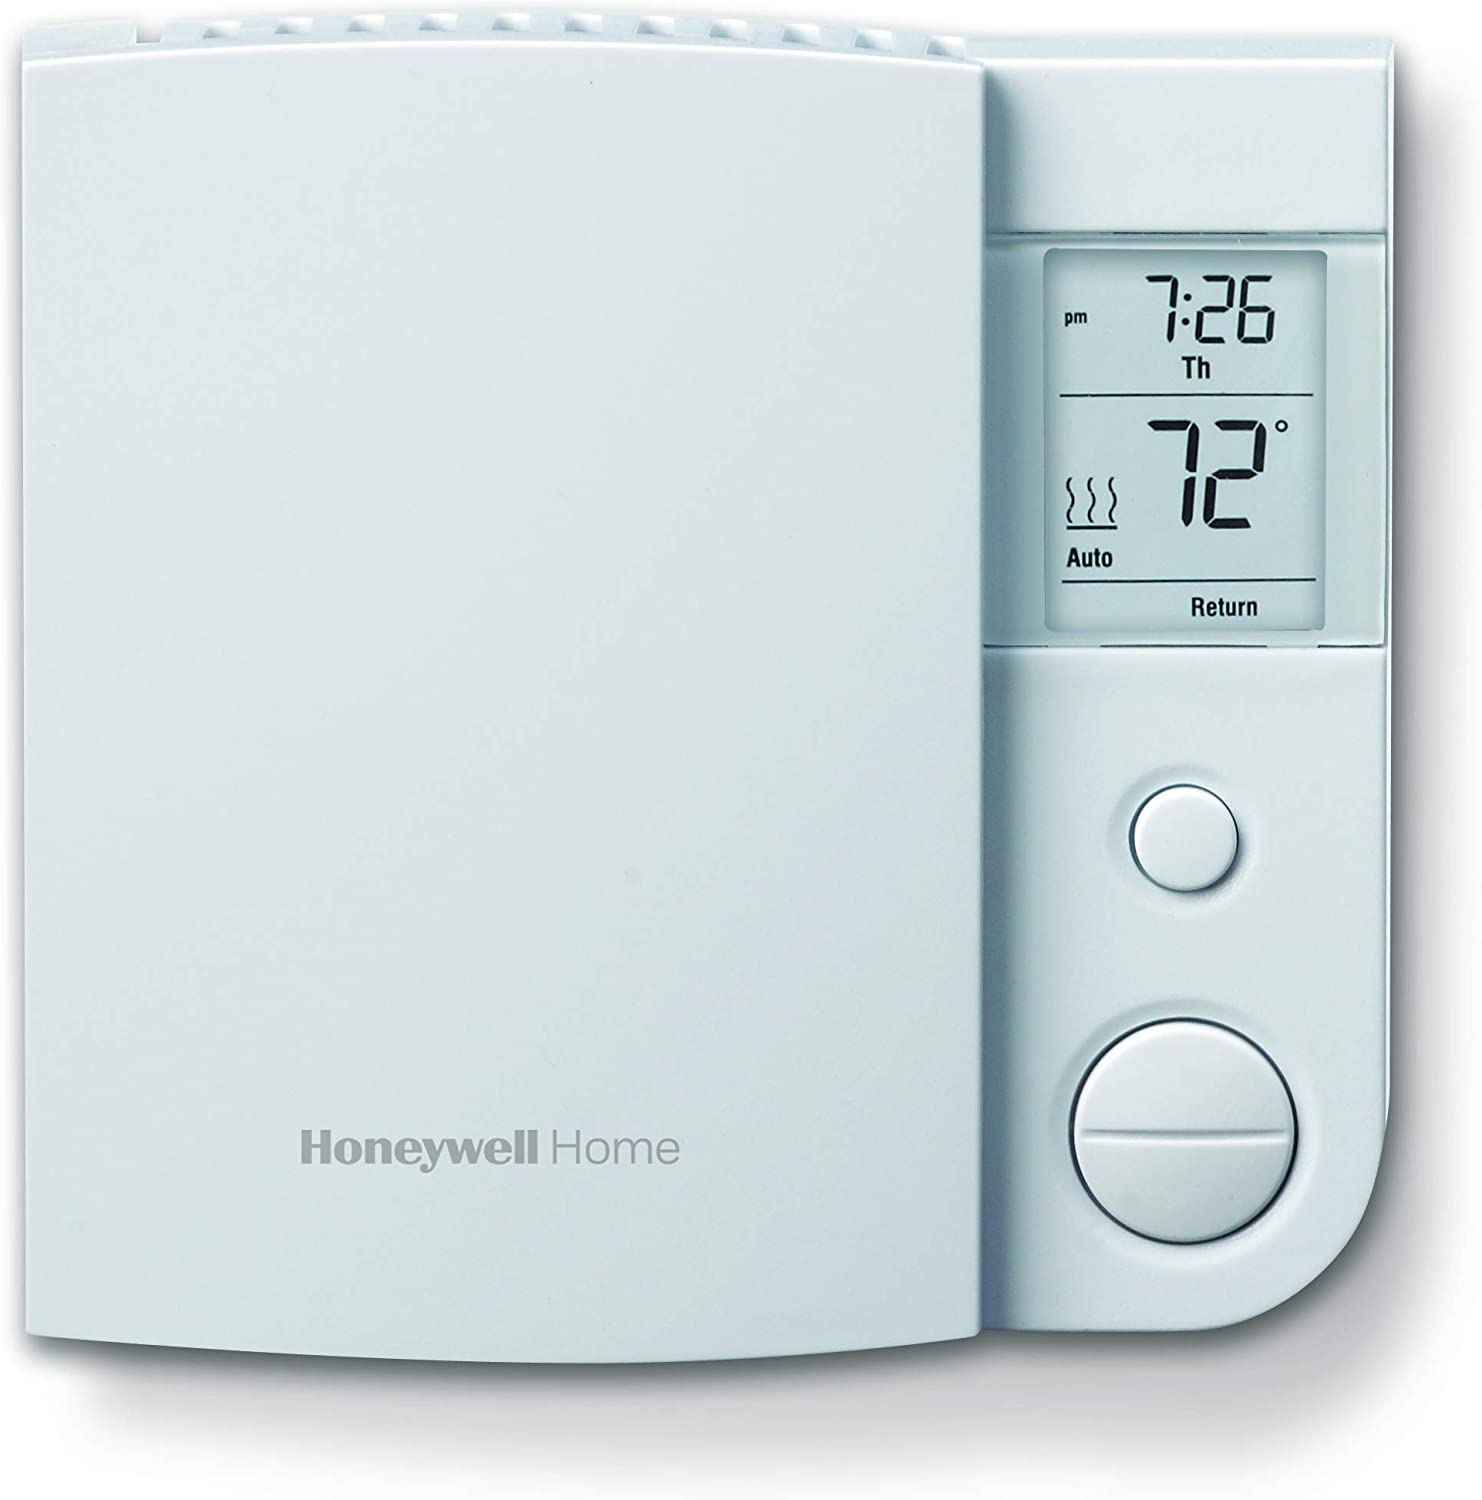 Honeywell Home RLV4305A1000 E1 Weekly update Electric Baseboard Manufacturer regenerated product Heaters Rlv430